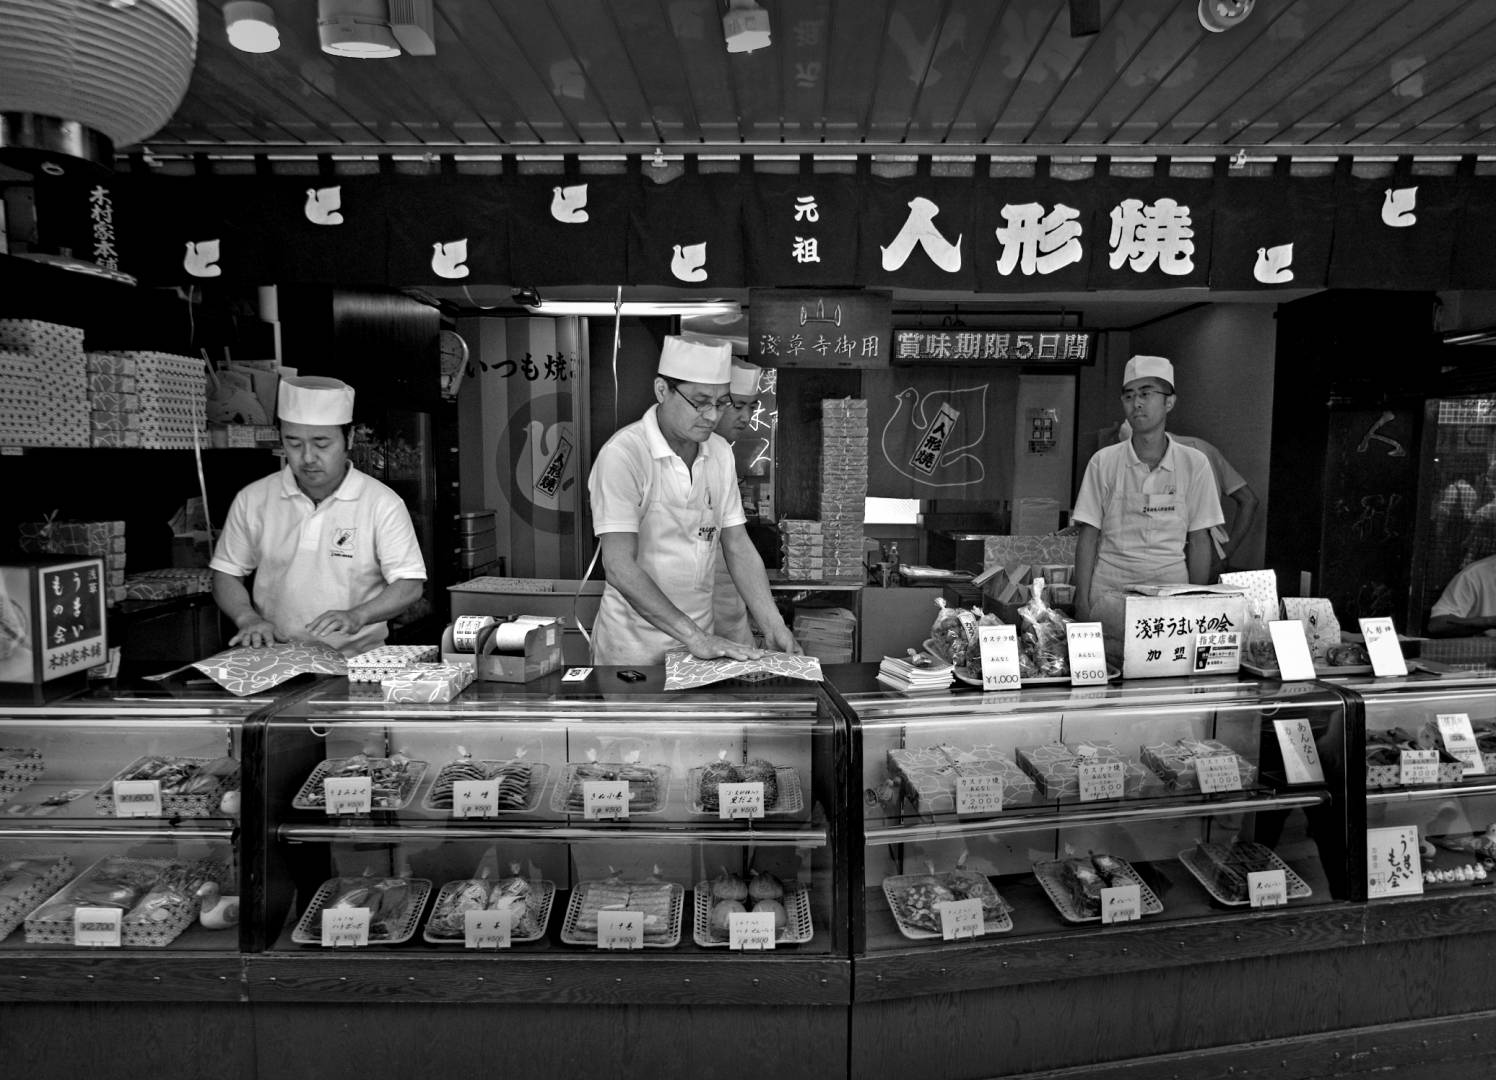 Asakusa Temple, Baked goods shop, Leica M8 28mm Voigtlaender